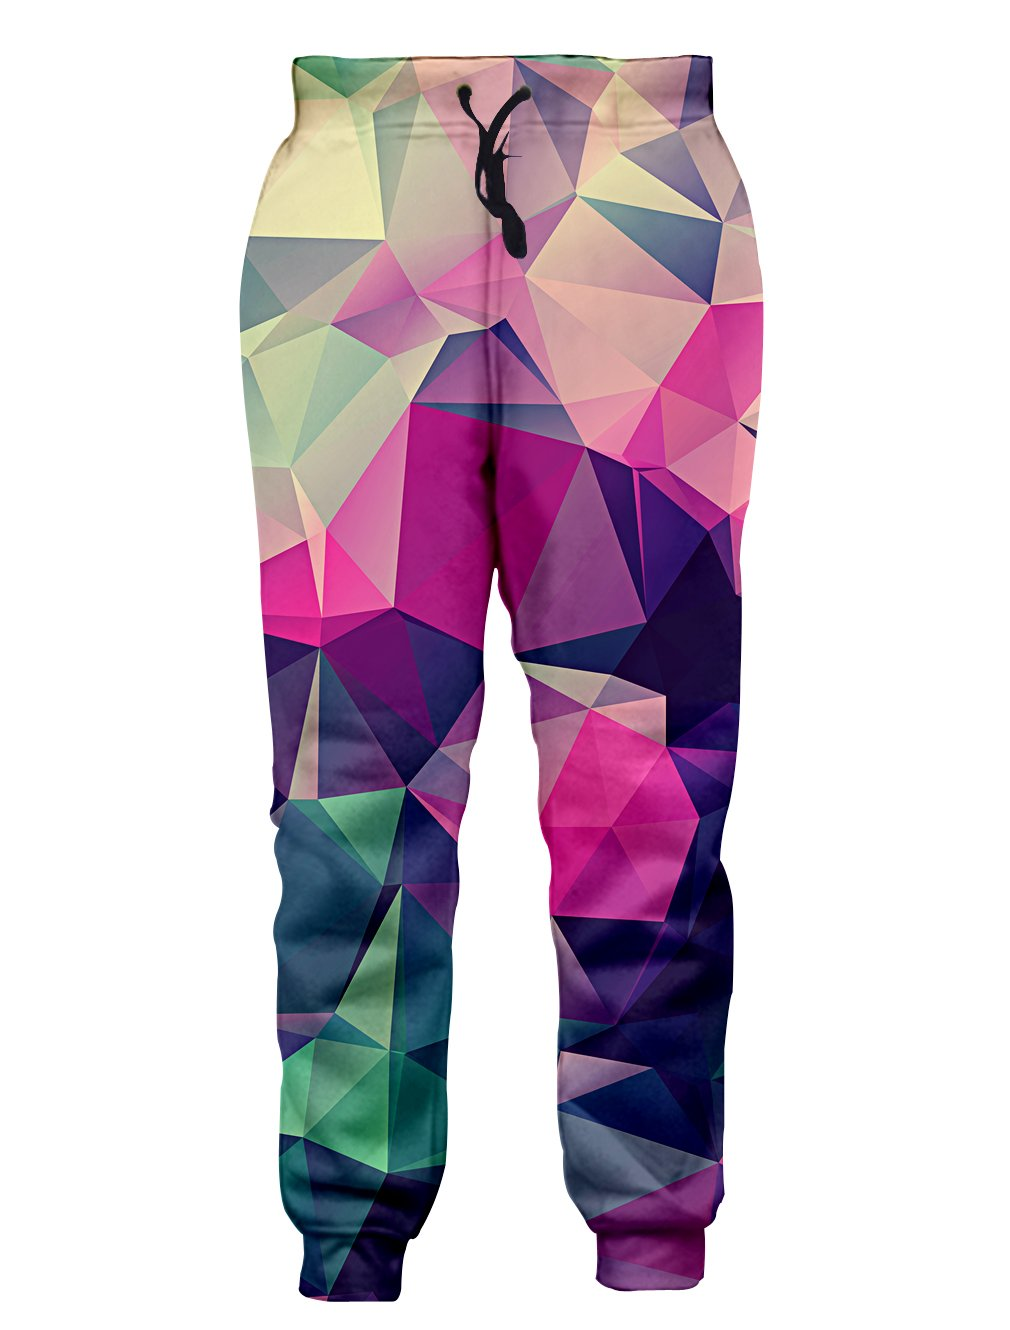 1e65a36717fdf7 Galleon - Leapparel Men/Women 3D Joggers Pants Trousers Sport Track  Sweatpants Baggy (XXL, Geometric)